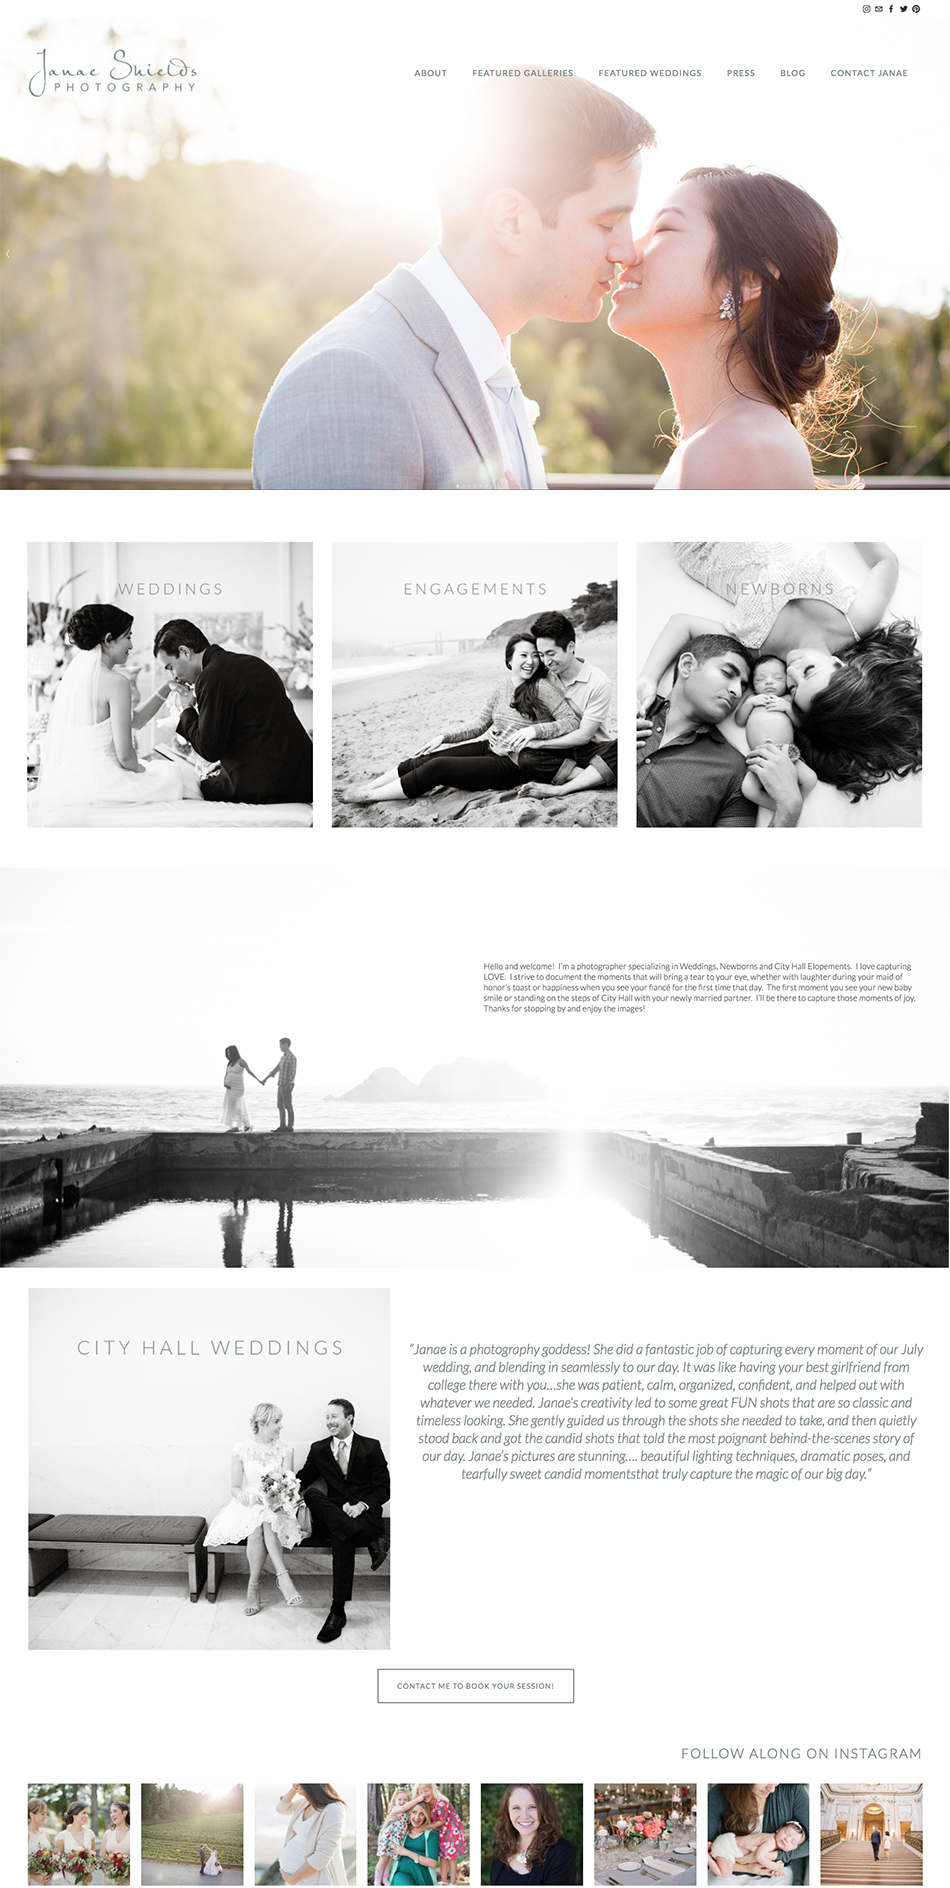 Website Designer for Wedding Professionals and Photographers | The Editor's Touch